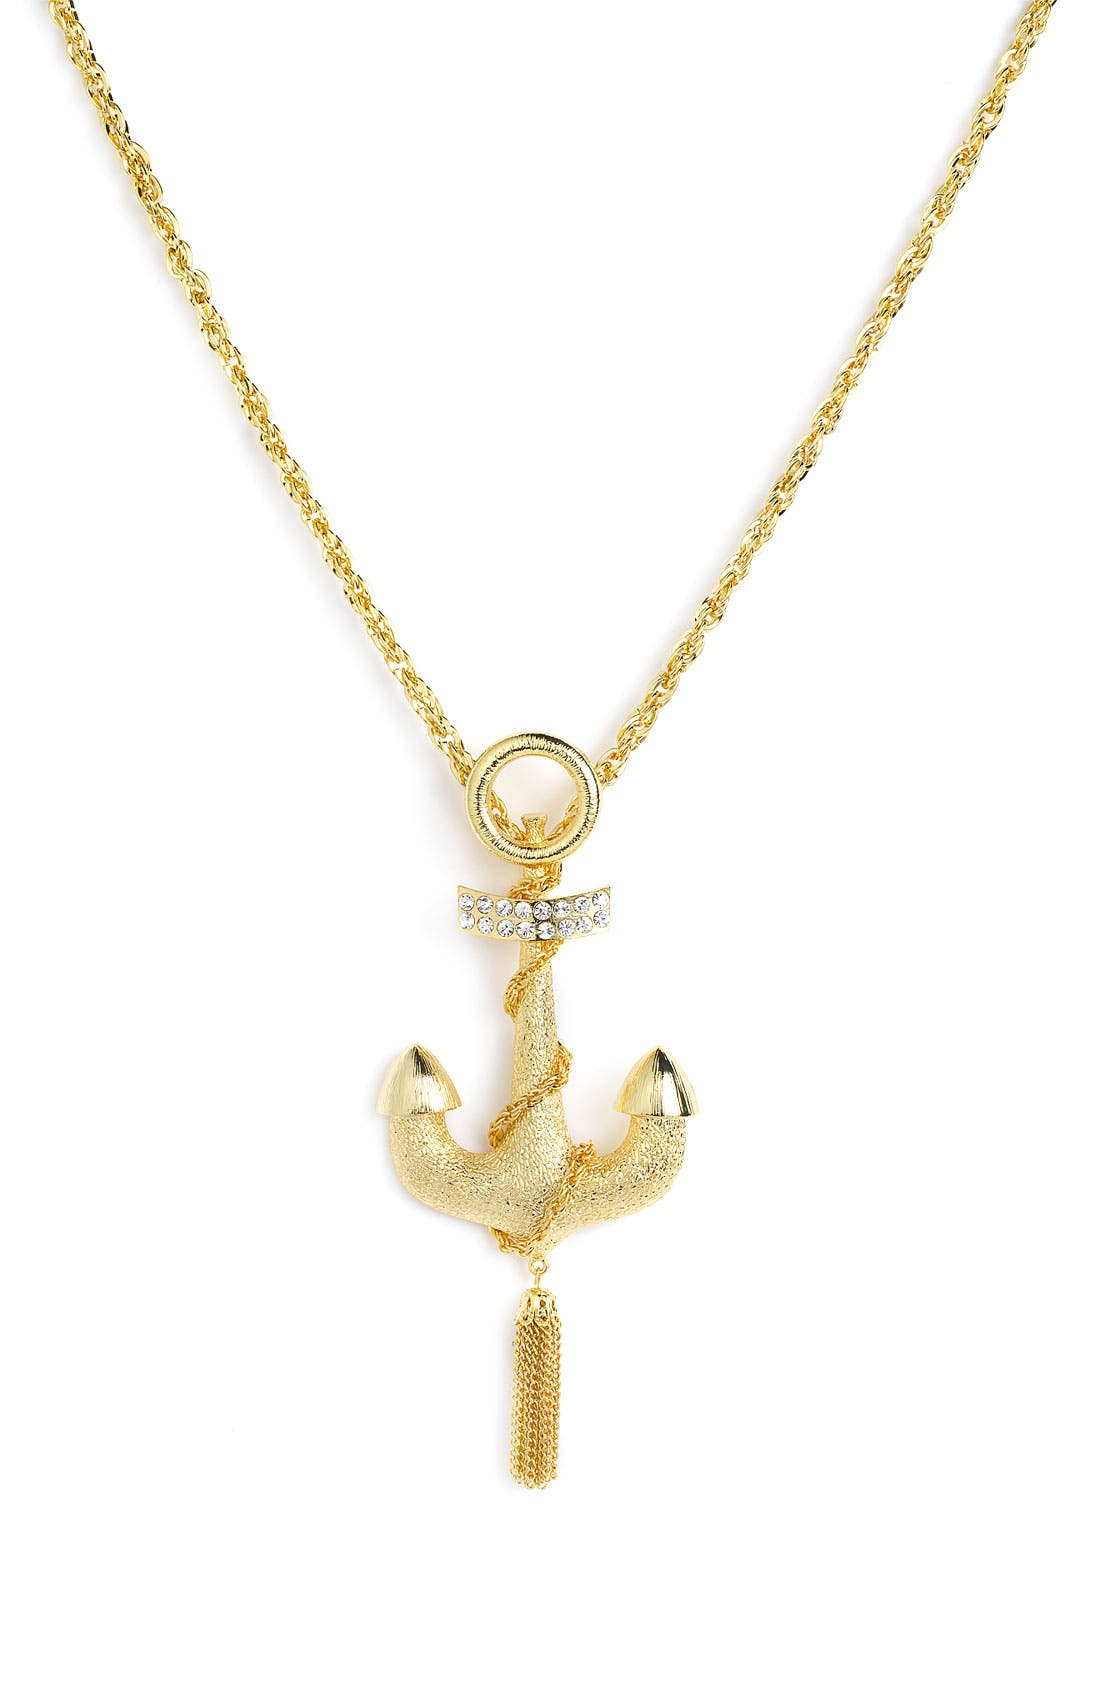 Main Image - Spring Street Design Group Anchor Pendant Necklace